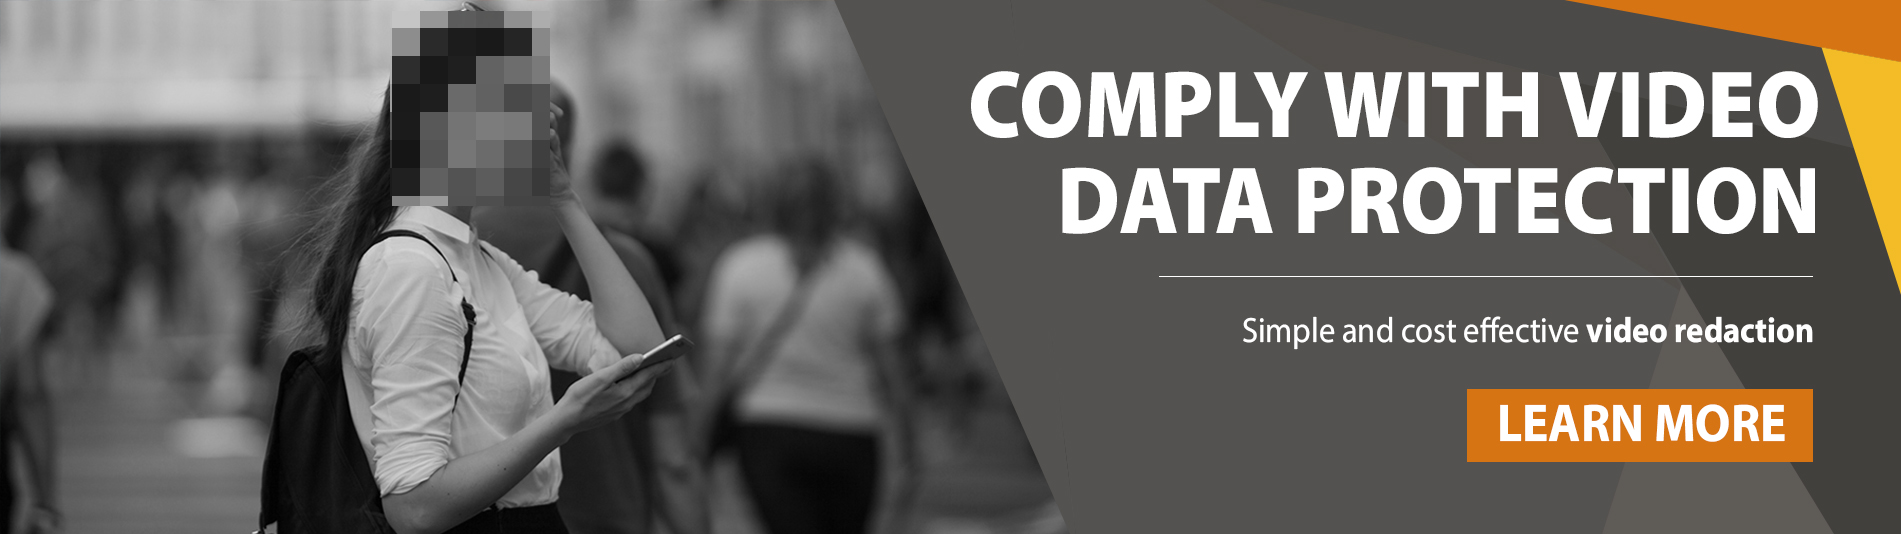 Comply with video data protection